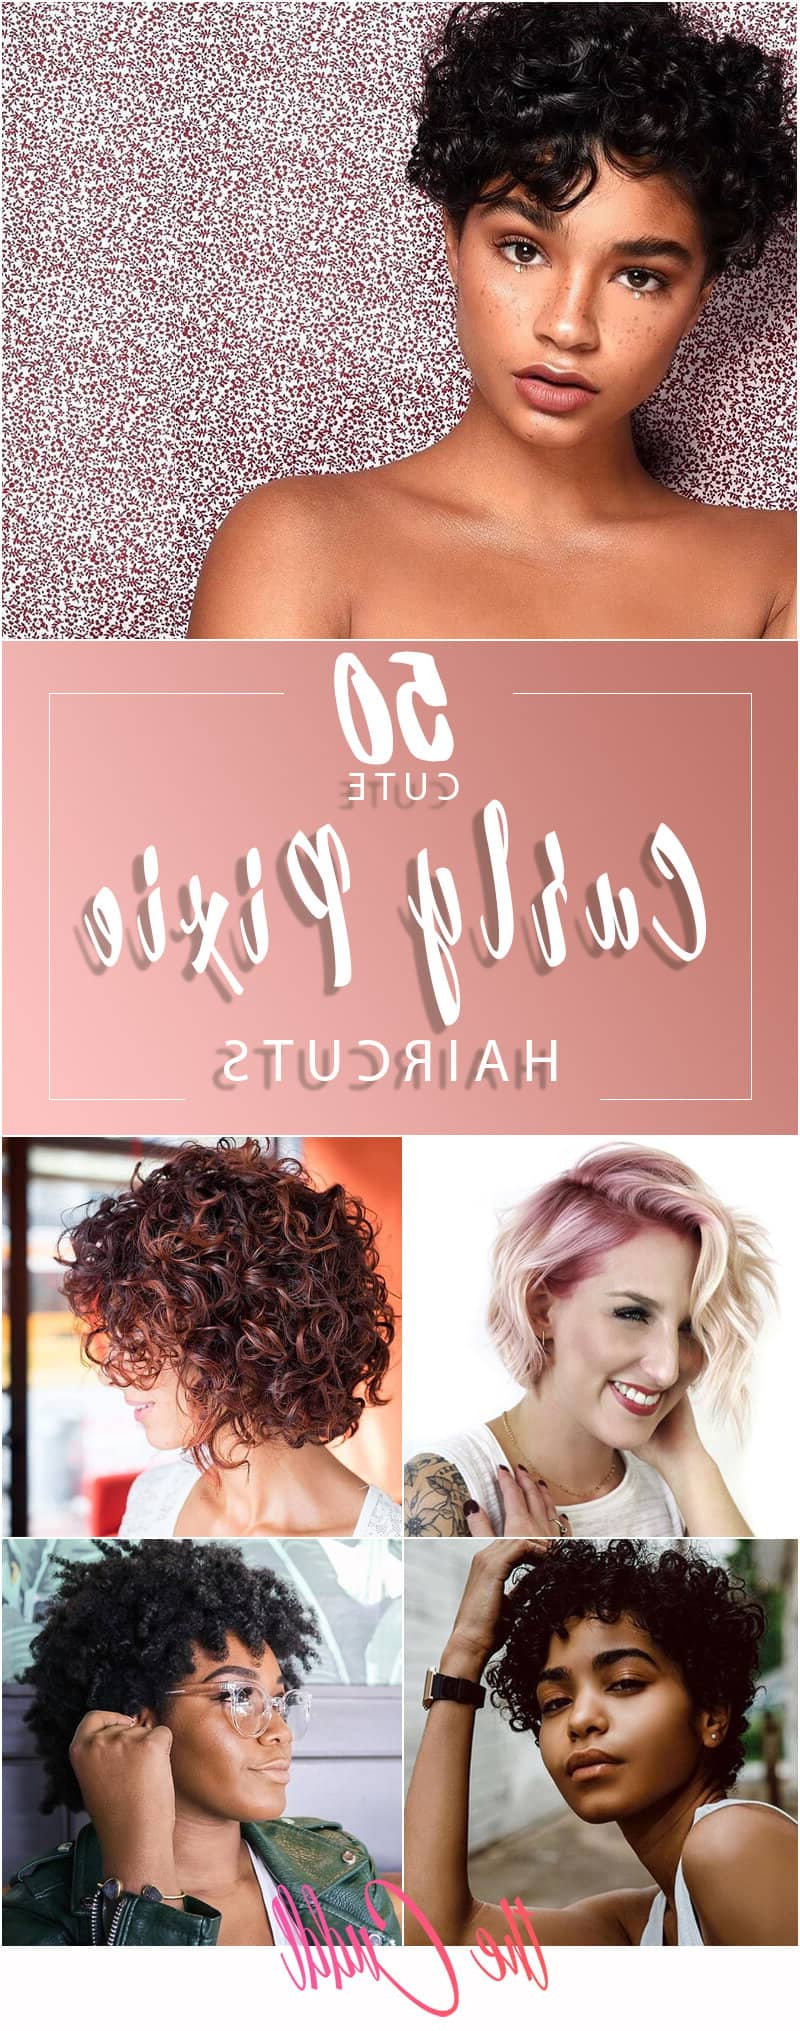 50 Bold Curly Pixie Cut Ideas To Transform Your Style In 2019 Inside Blonde Pixie Haircuts With Curly Bangs (View 16 of 20)